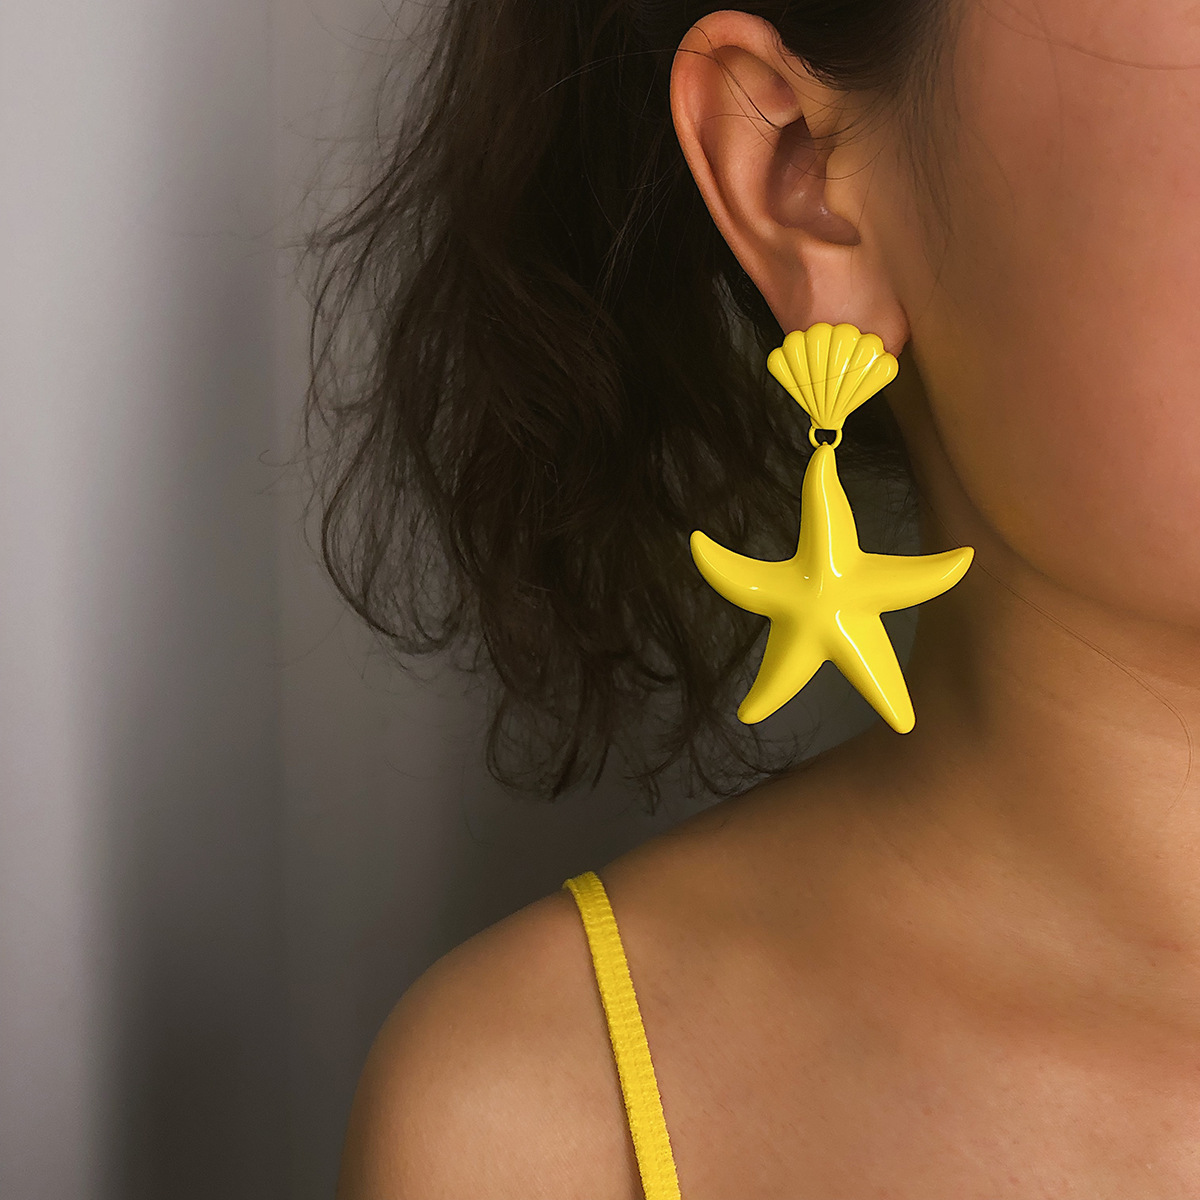 Star earrings female ethic shell starfish earrings Hanging Earrings For Women Vintage Drop Earrings Fashion Jewelry Gift in Drop Earrings from Jewelry Accessories